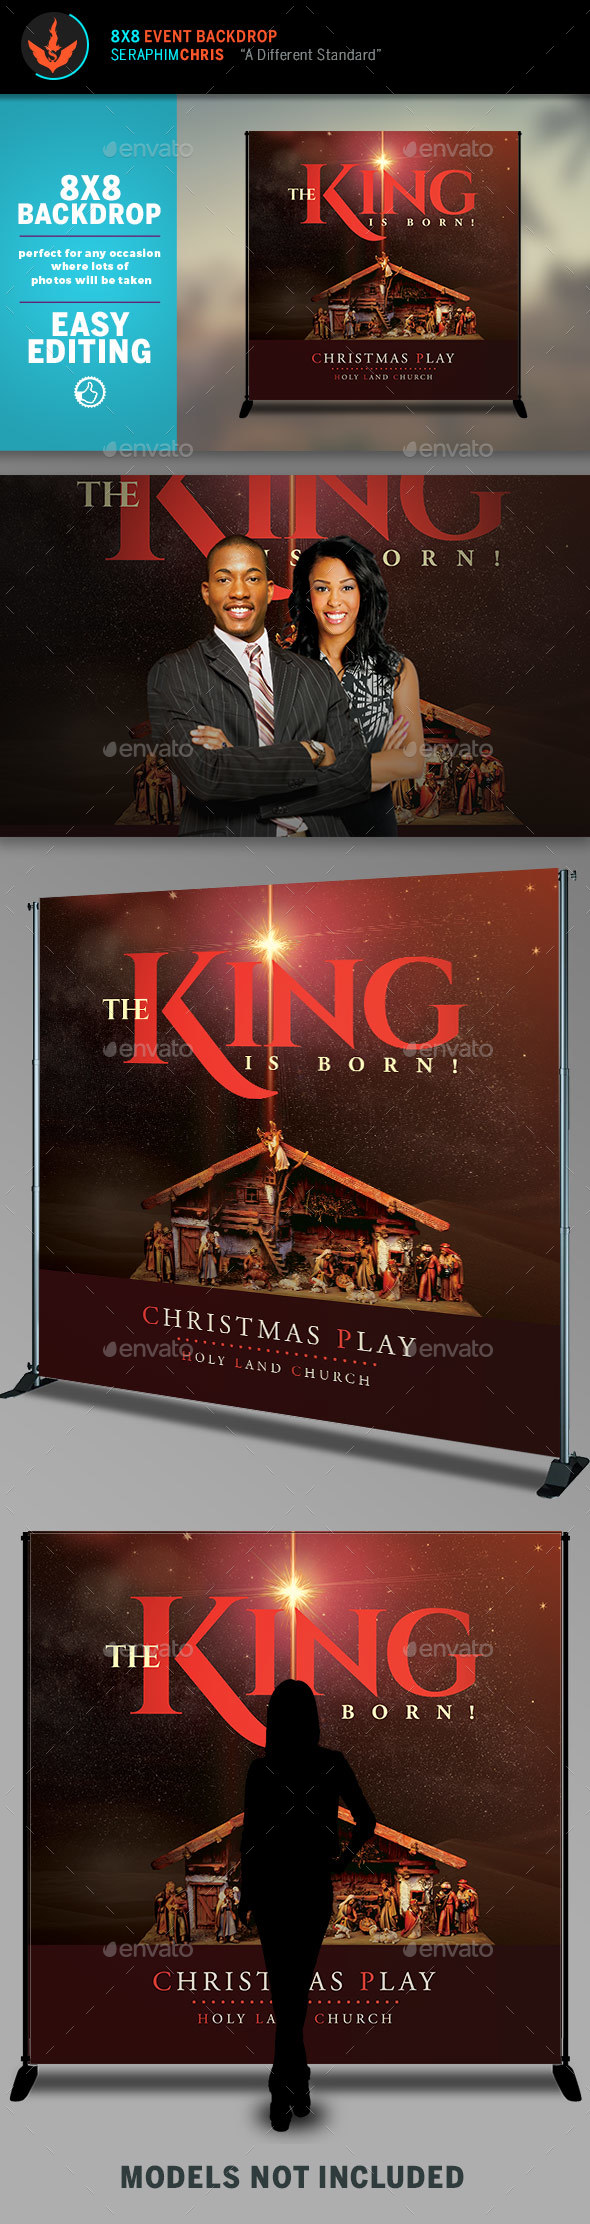 The King is Born Christmas 8x8 Backdrop Template - Packaging Print Templates